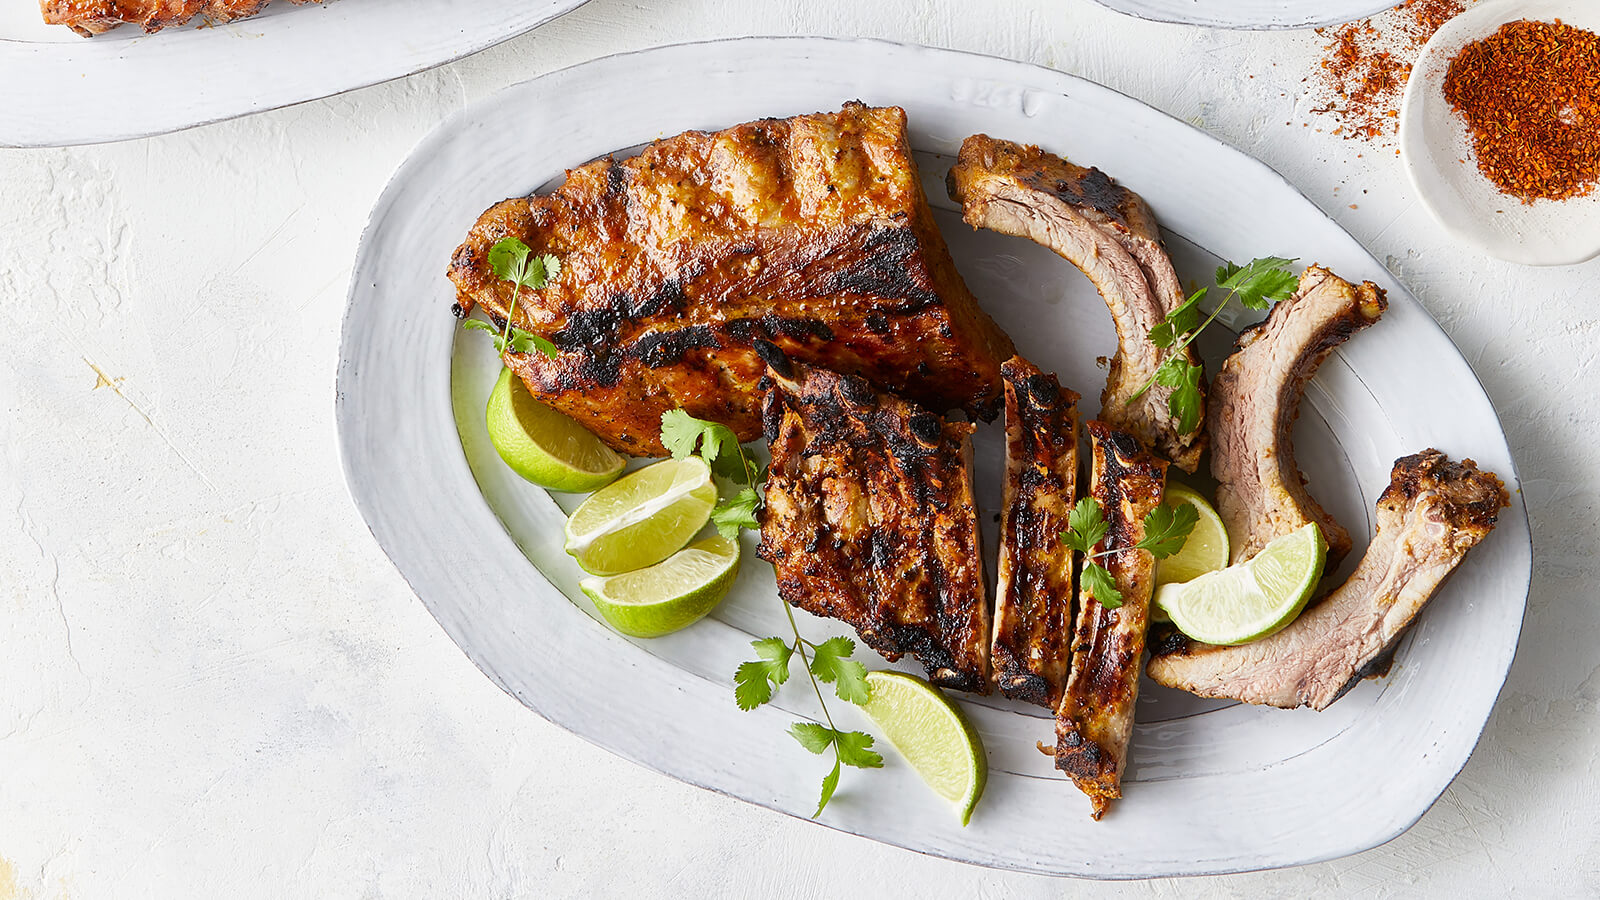 Peruvian Style Sweet and Spicy Ribs